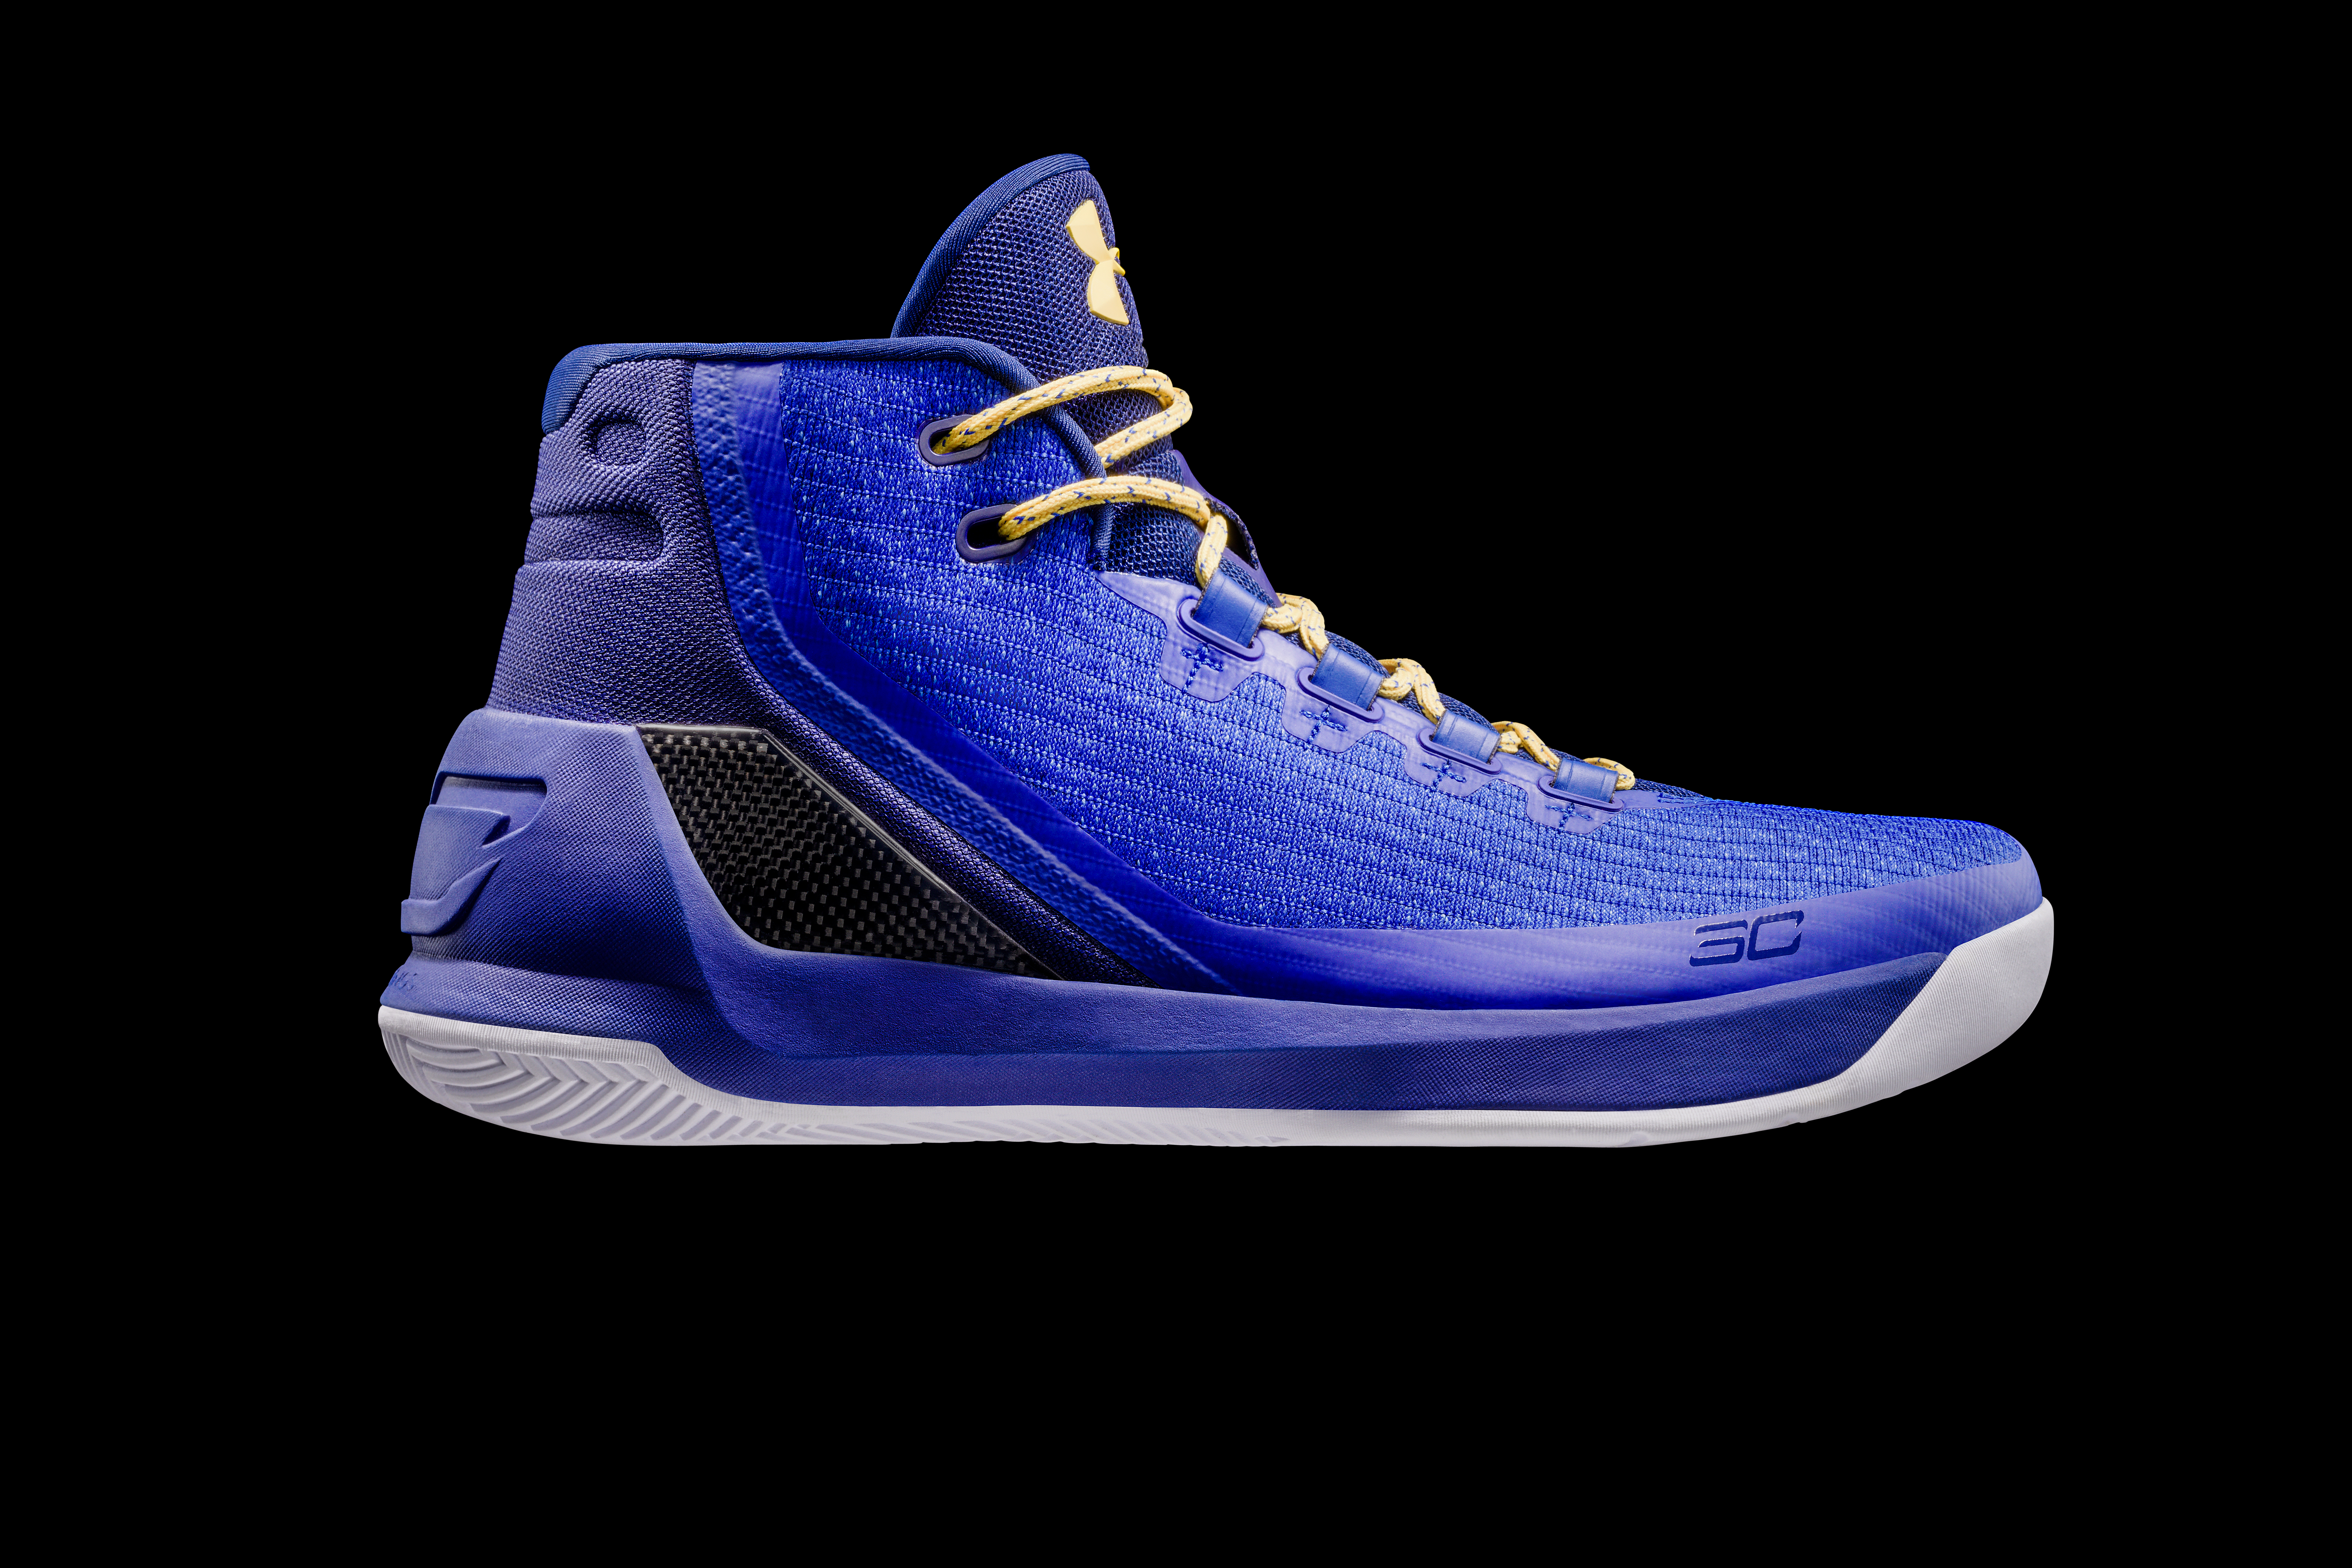 Under Armour dévoile la Curry 3